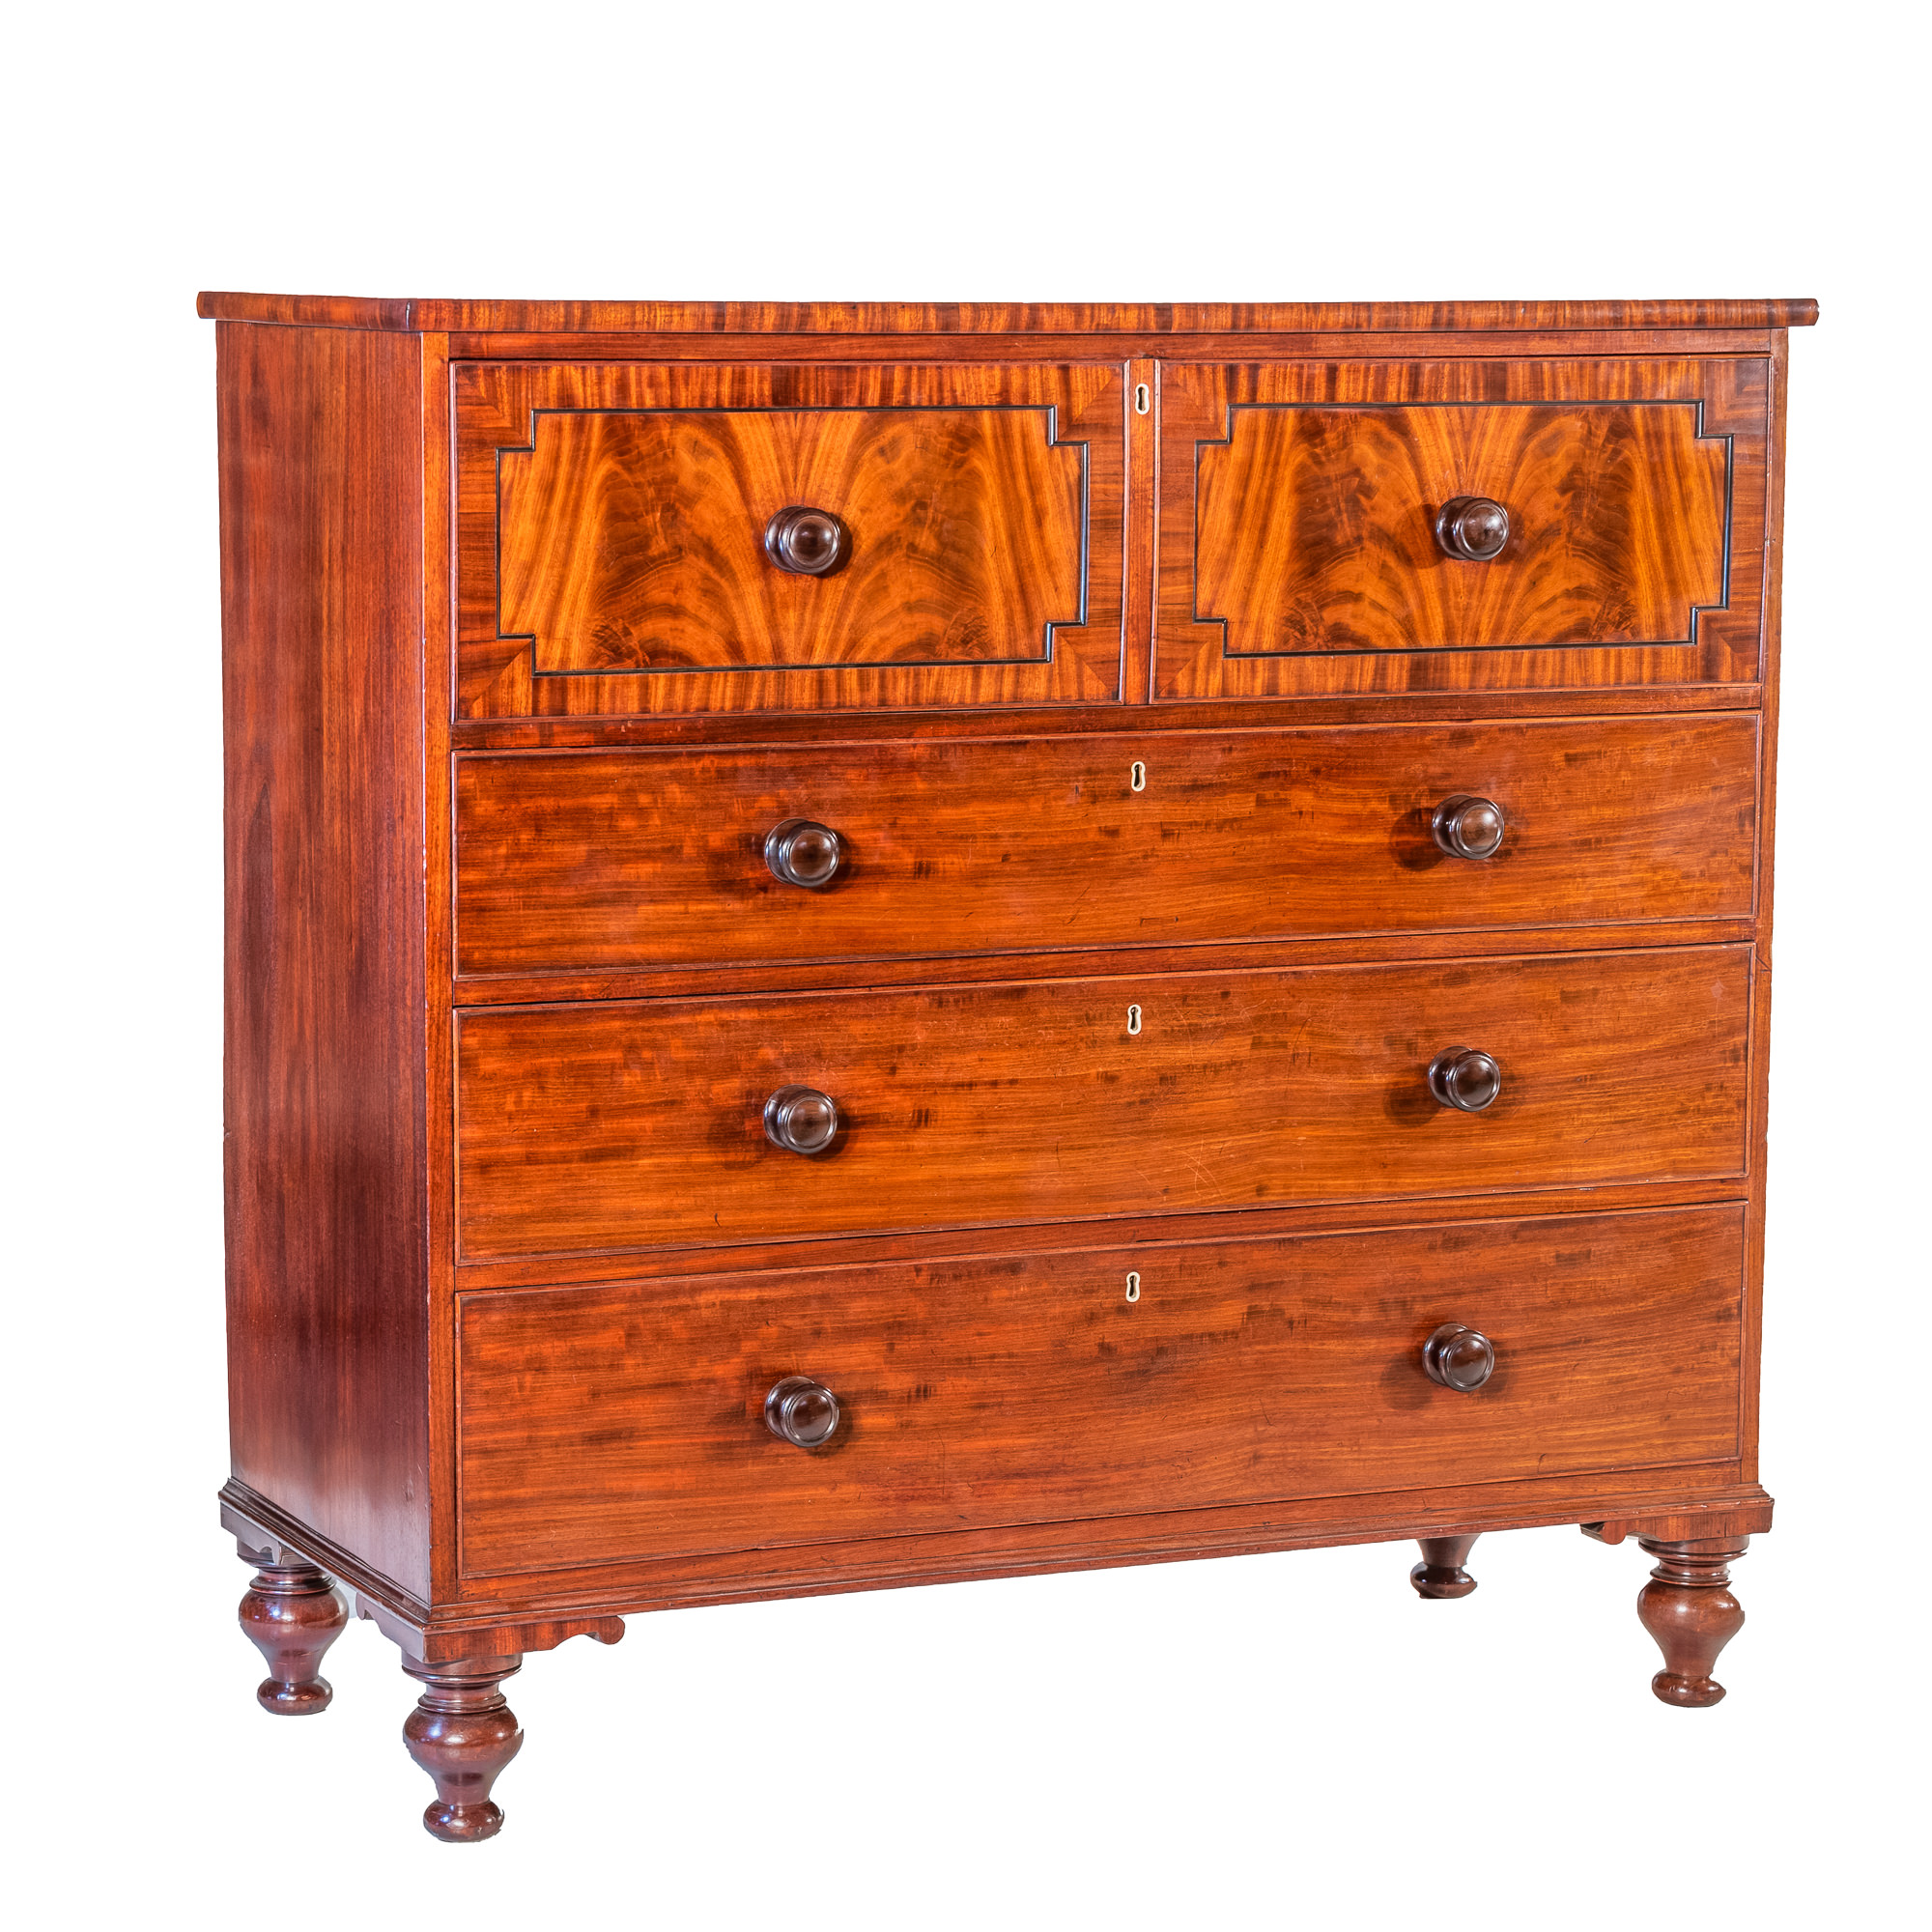 'George IV Mahogany and Satinwood Lined Secretaire Chest with Ebony Line Inlay Circa 1830'